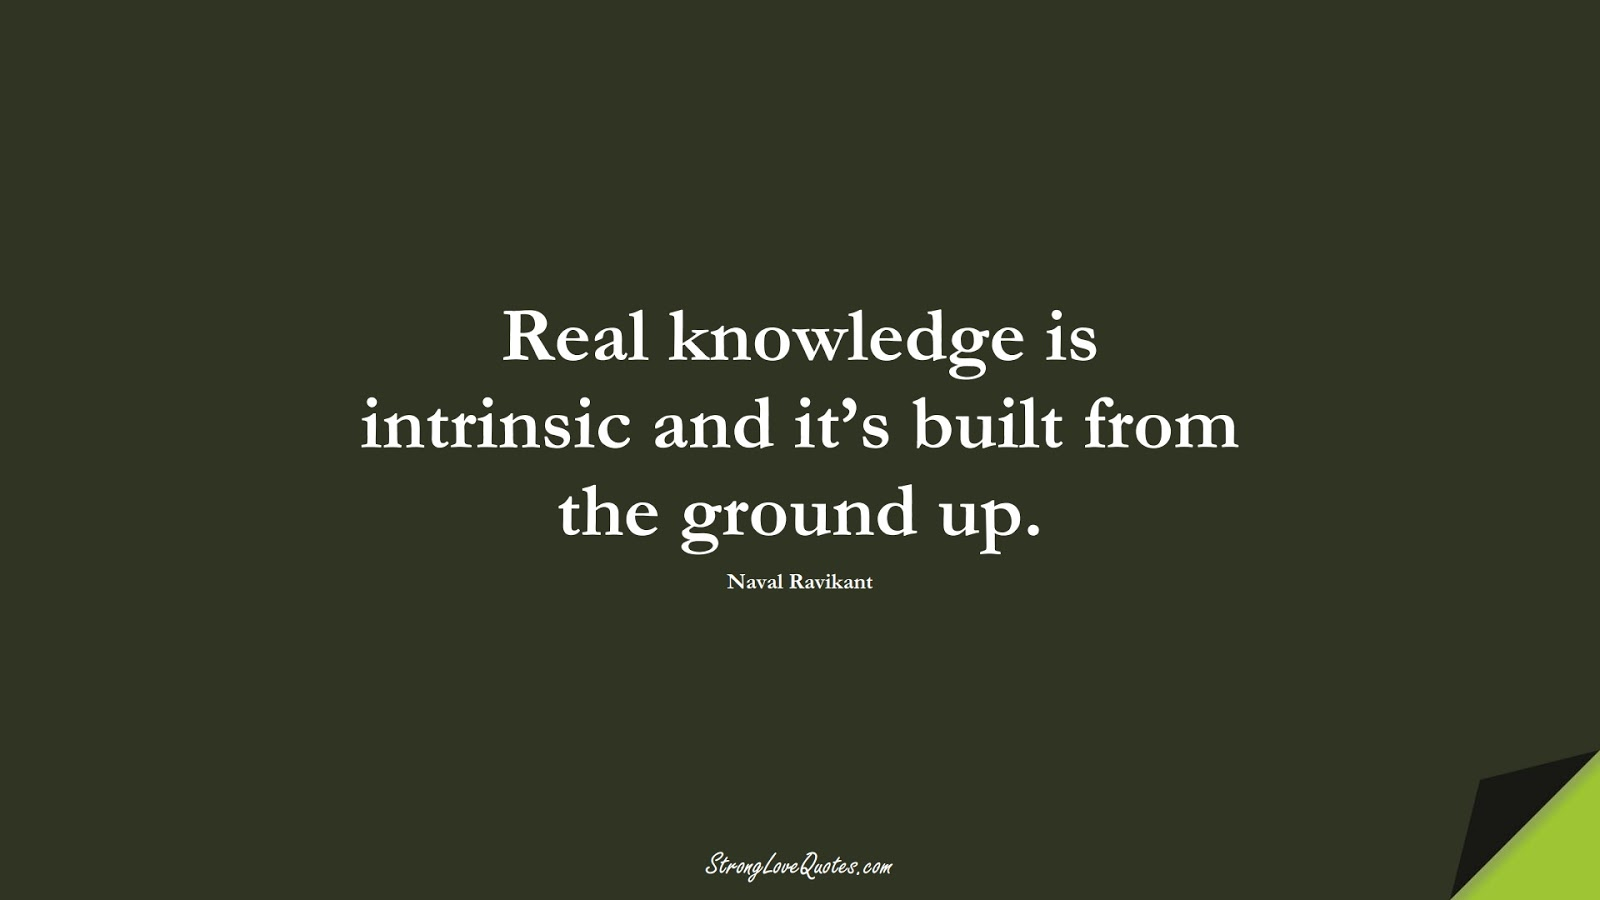 Real knowledge is intrinsic and it's built from the ground up. (Naval Ravikant);  #KnowledgeQuotes